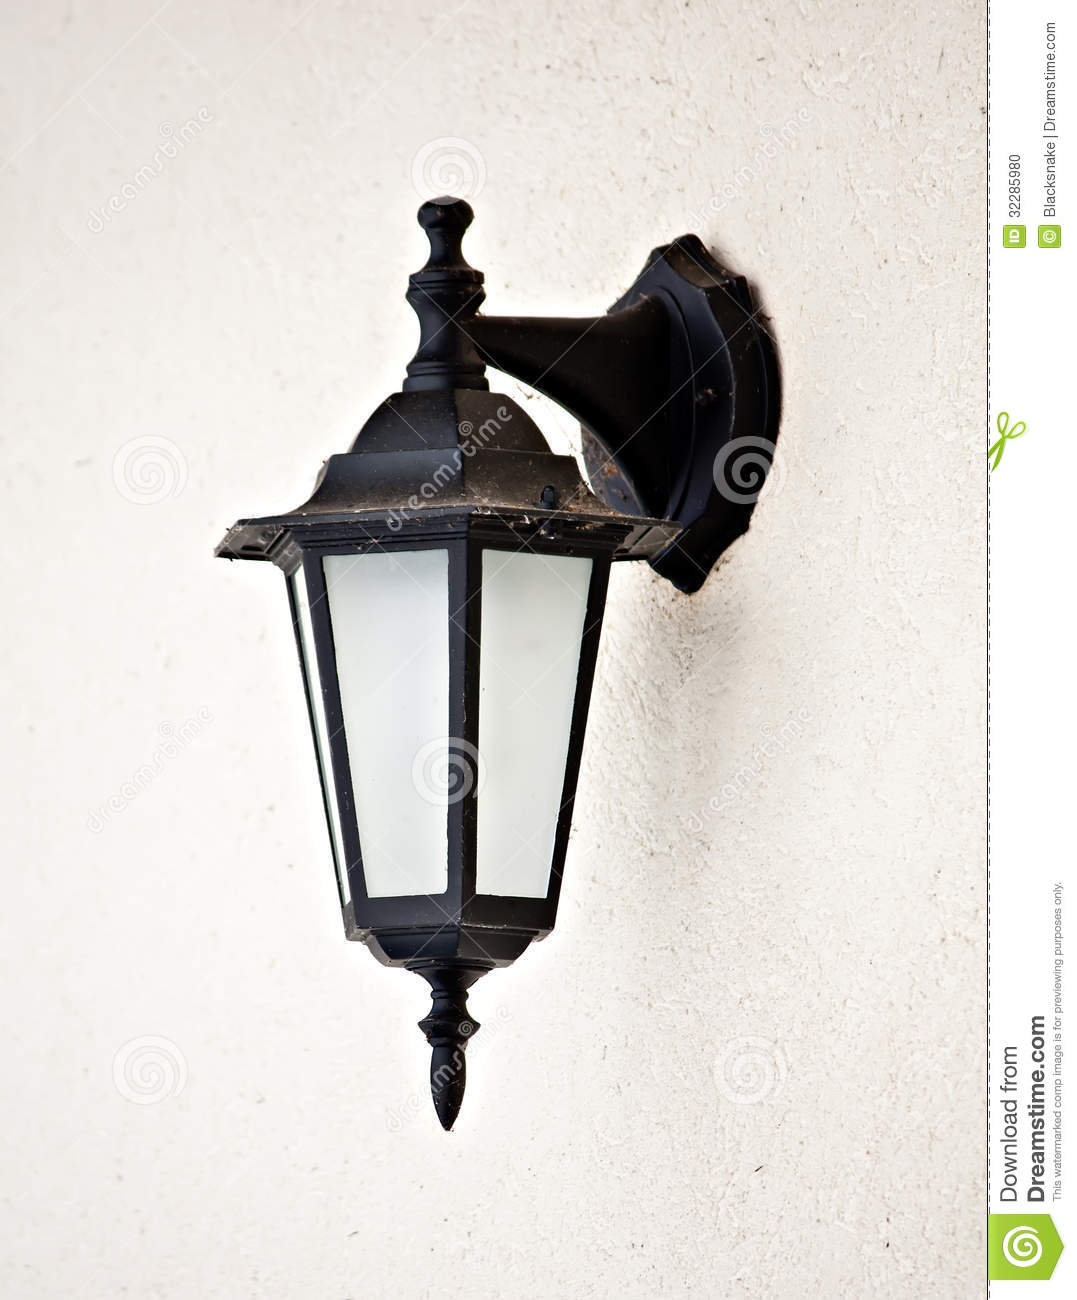 Wall Hanging Lamps : Old Vintage Outdoor Lantern Wall Hanging Lamp Stock Photo - Image: 32285980